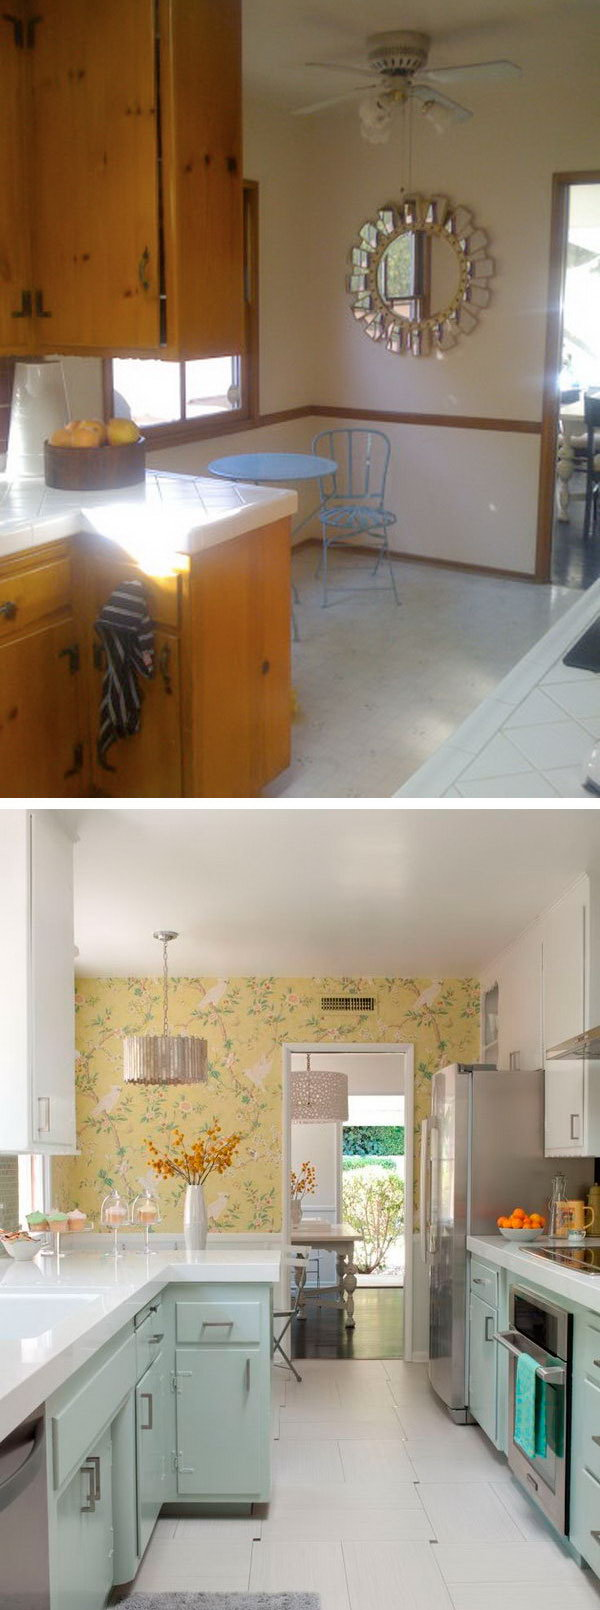 before and after kitchen makeover ideas kitchen makeover ideas Before After A s Kitchen Gets An Affordable Upgrade Unbelievable renovation with a